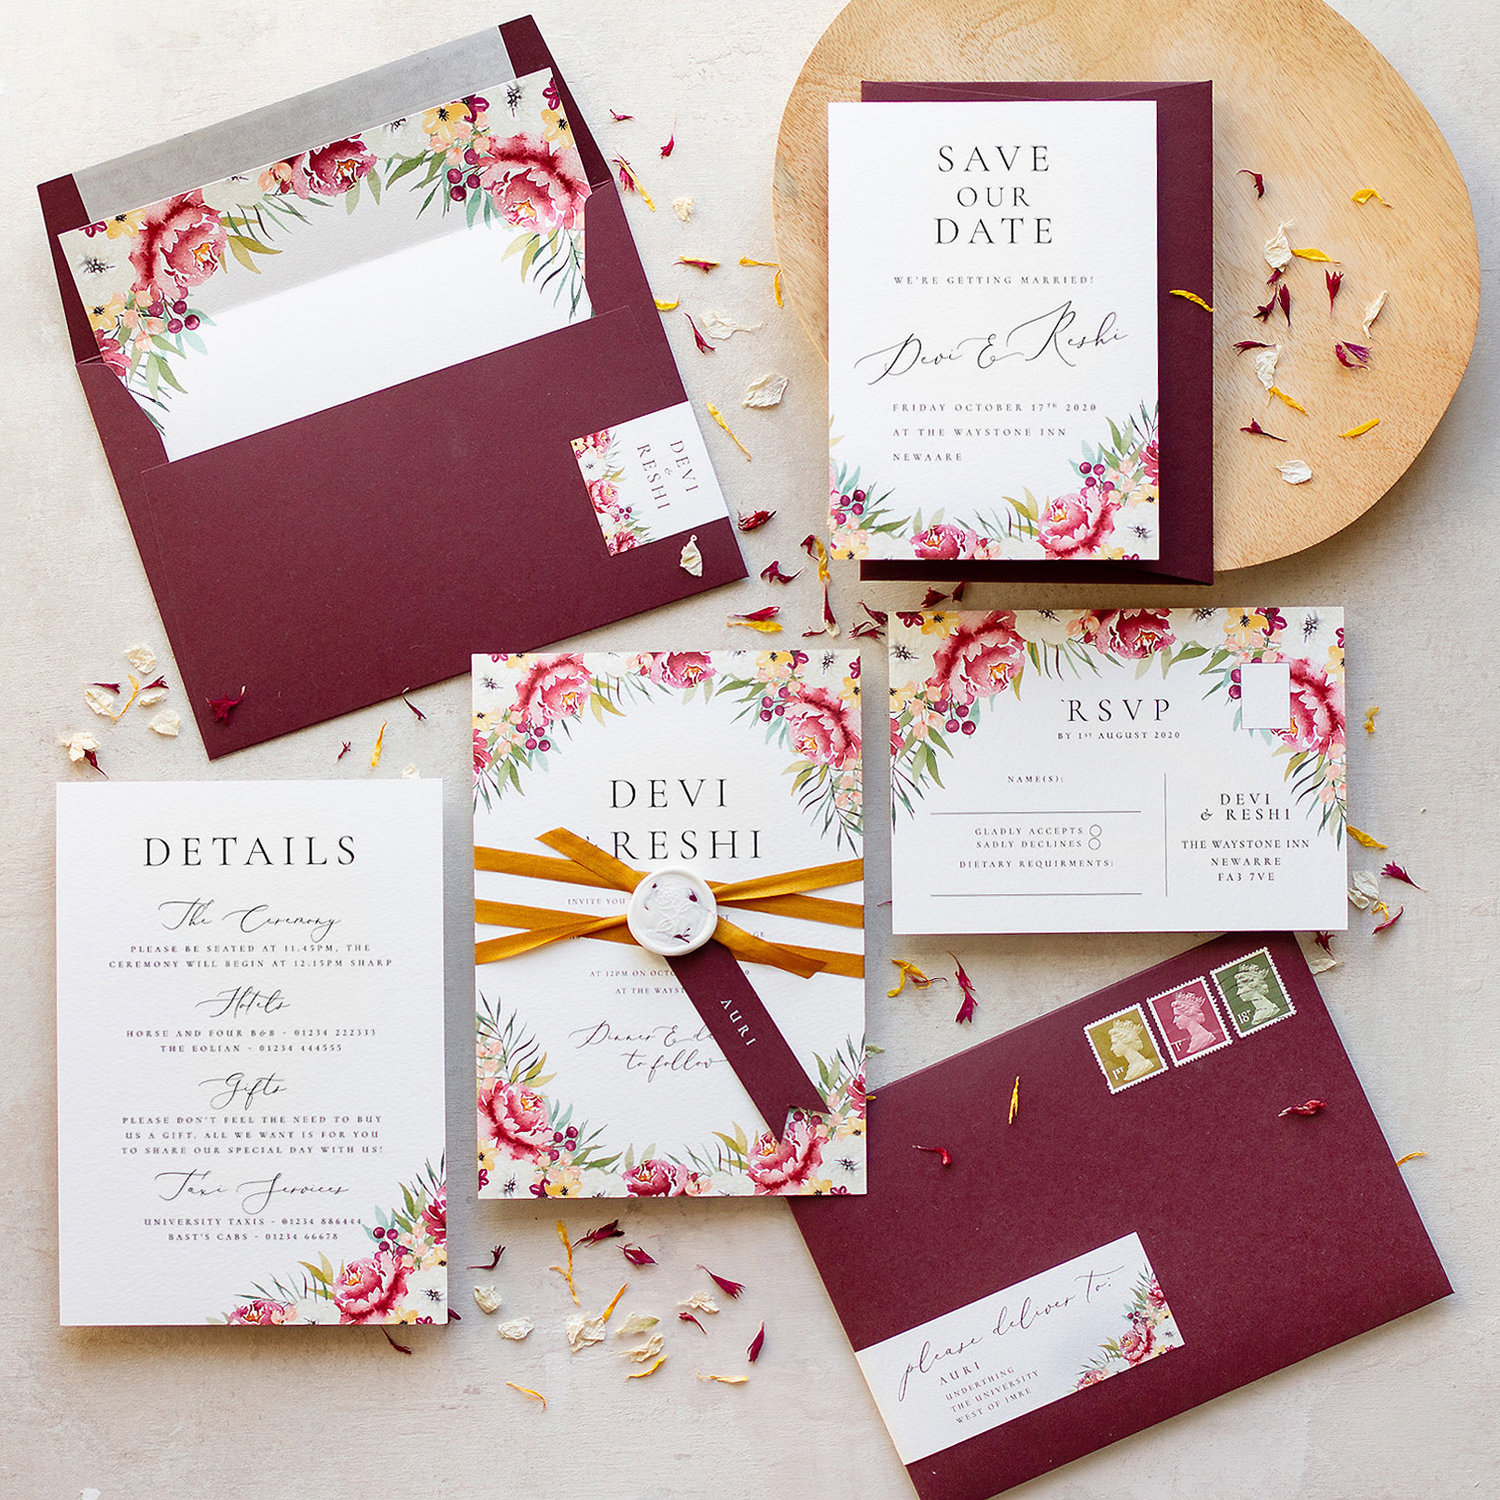 Autumn Wedding Invitation And Stationery Collection With Illustrated Watercolour Leaves Pingle Pie